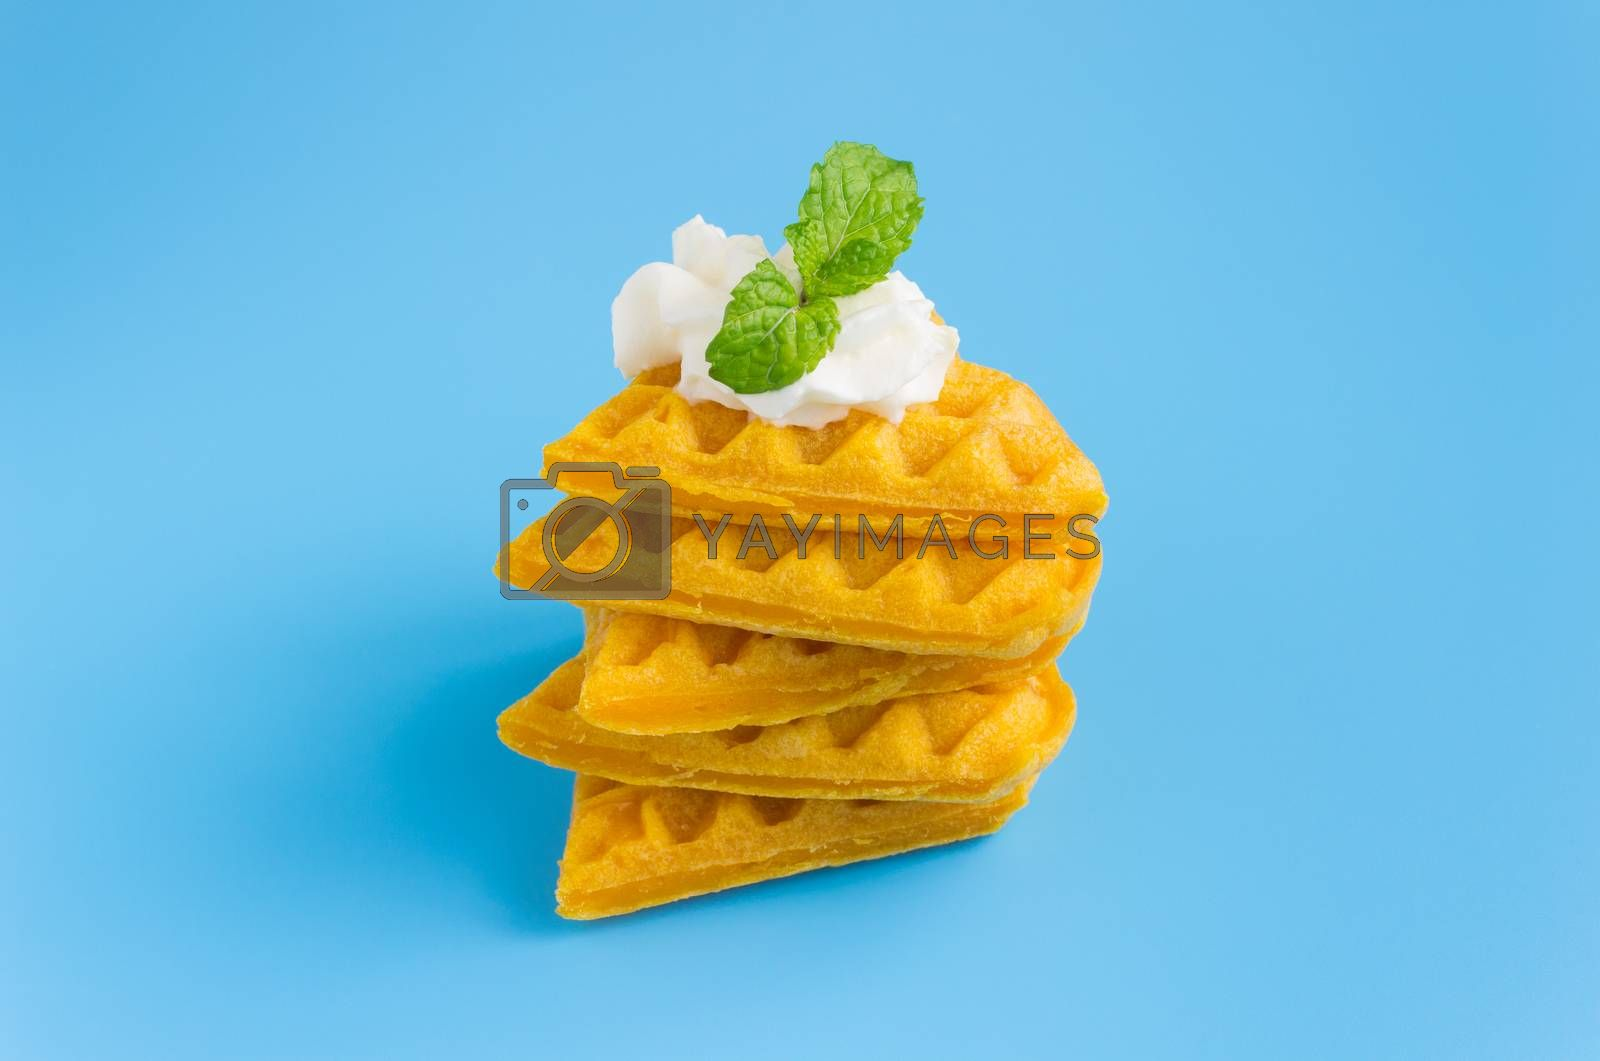 5 Pieces Waffle on Blue Pastel Background Minimalist Style. Heart shape waffle dessert in minimalist style for food and dessert category